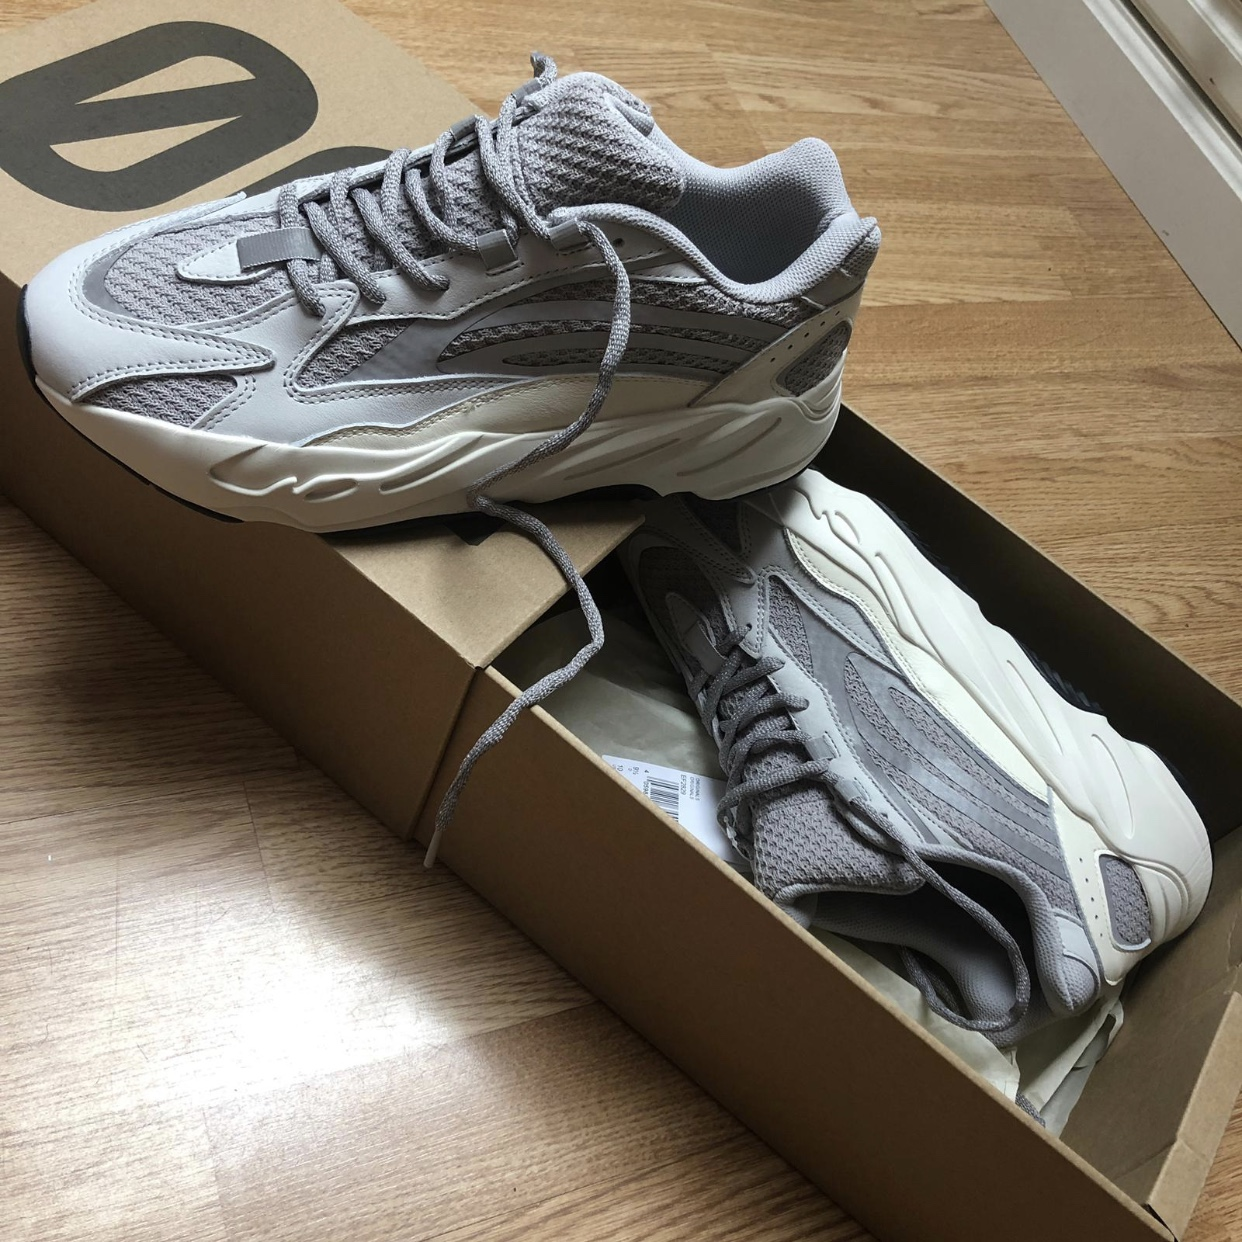 sports shoes 46689 bf326 Yeezy Boost 700 V2 Static Wave Runner size 9. Brand ...